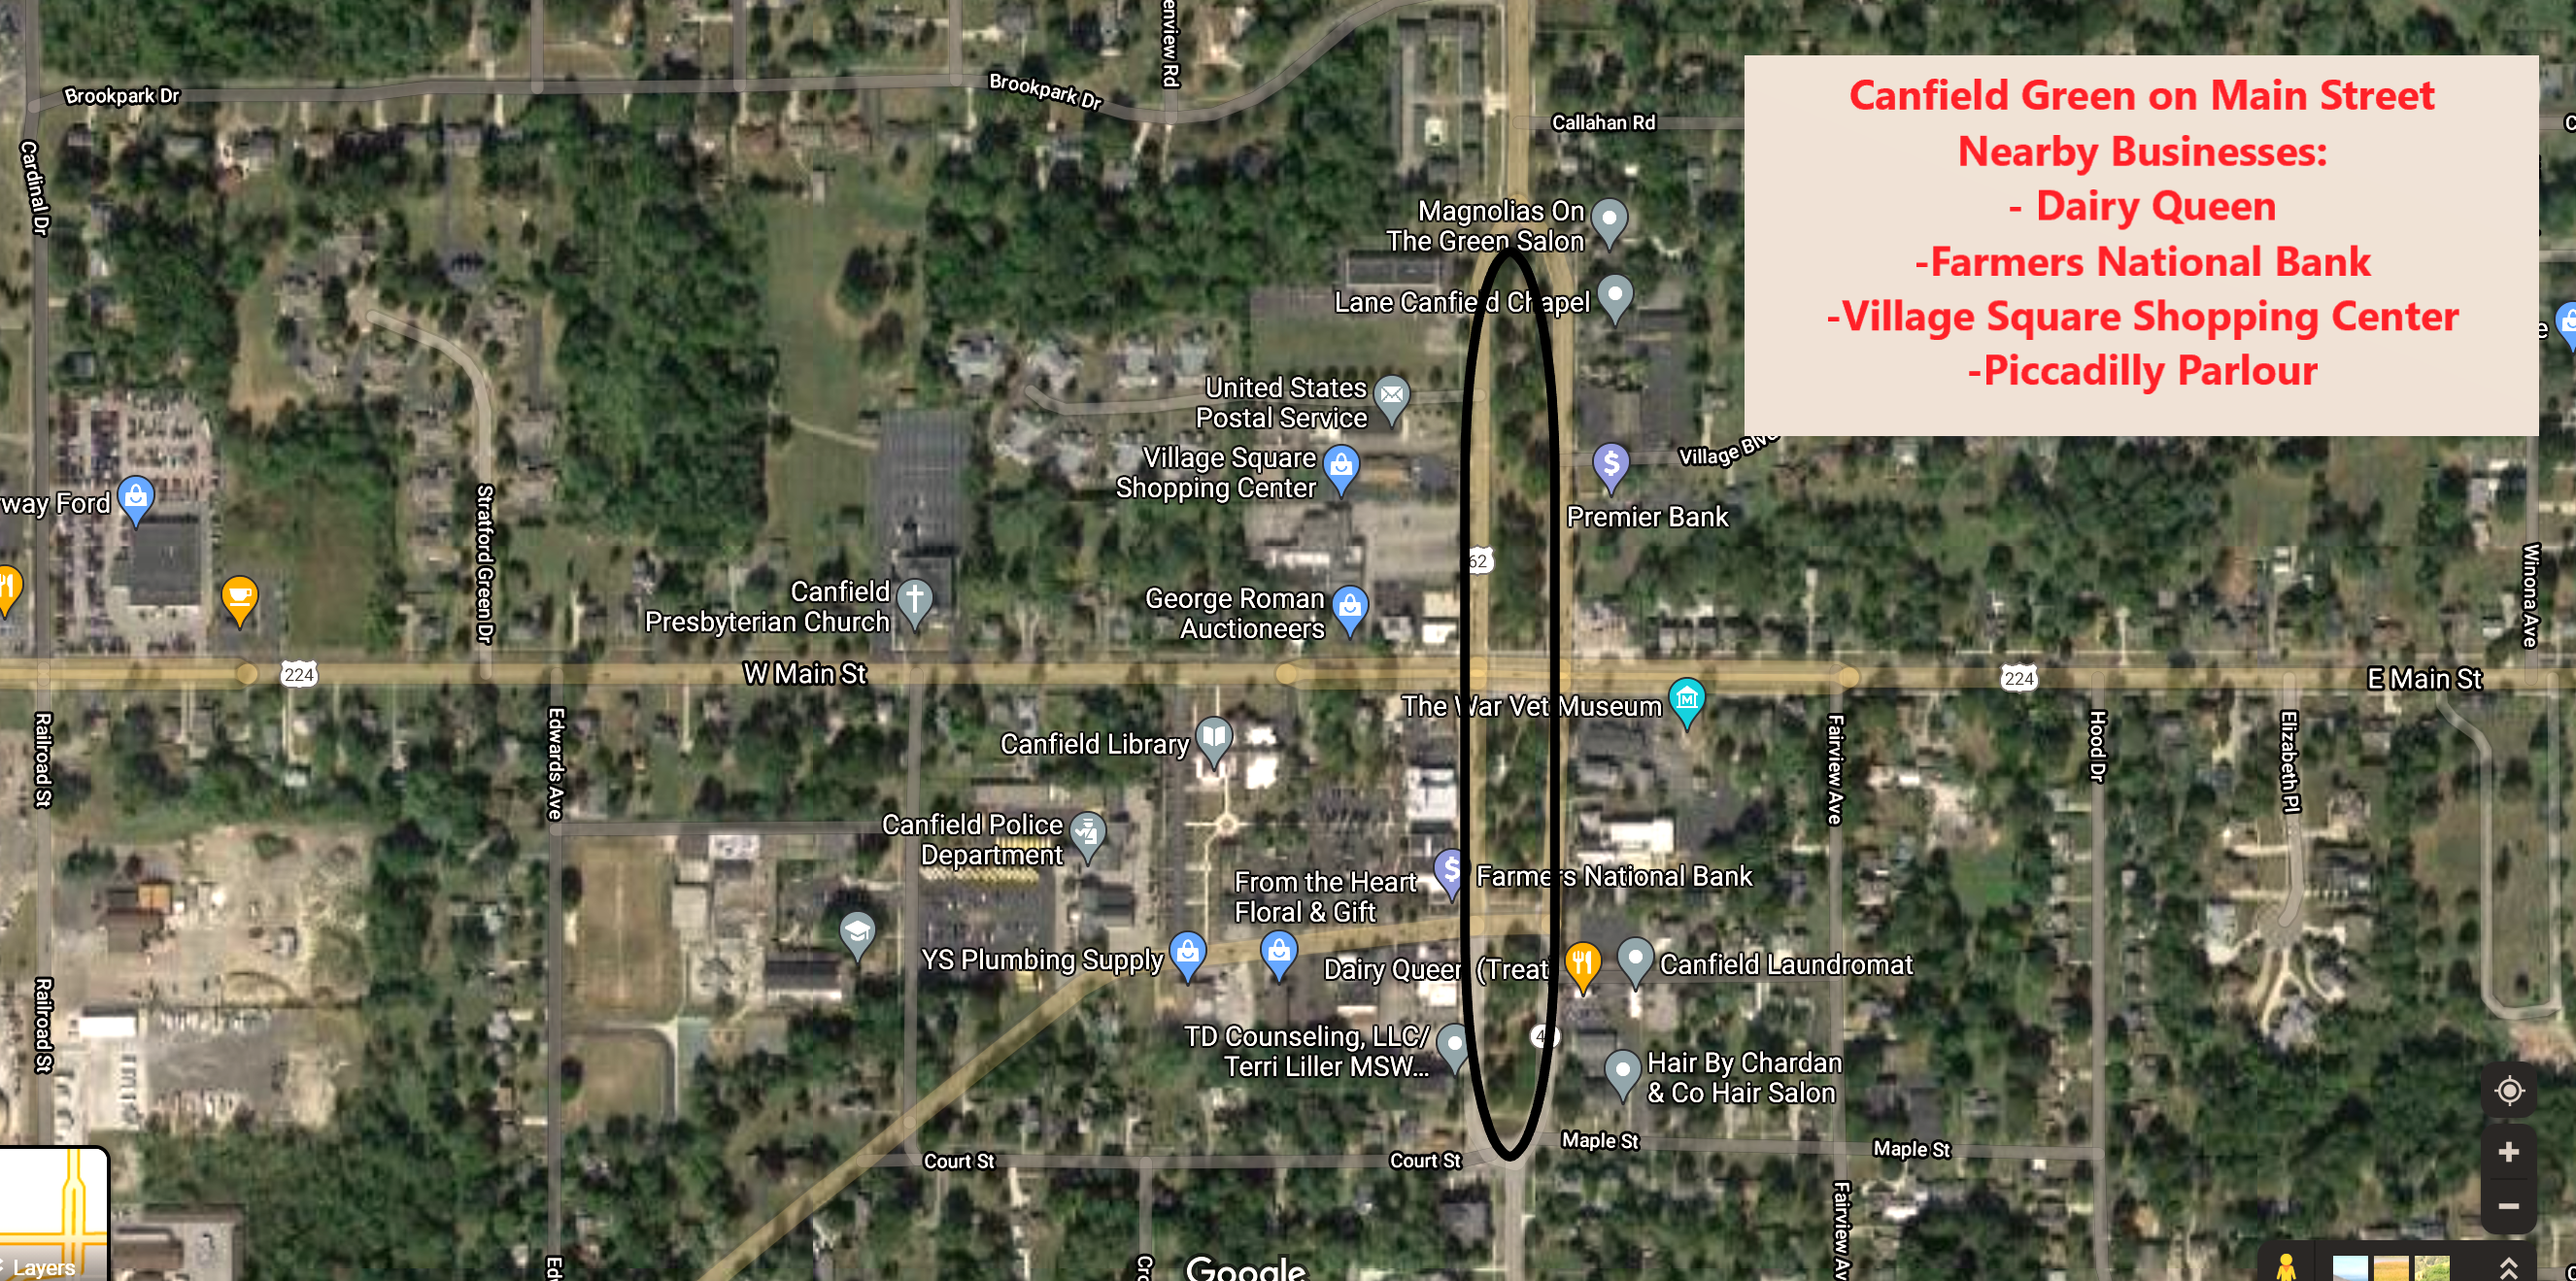 Canfield Green on Main Street Map